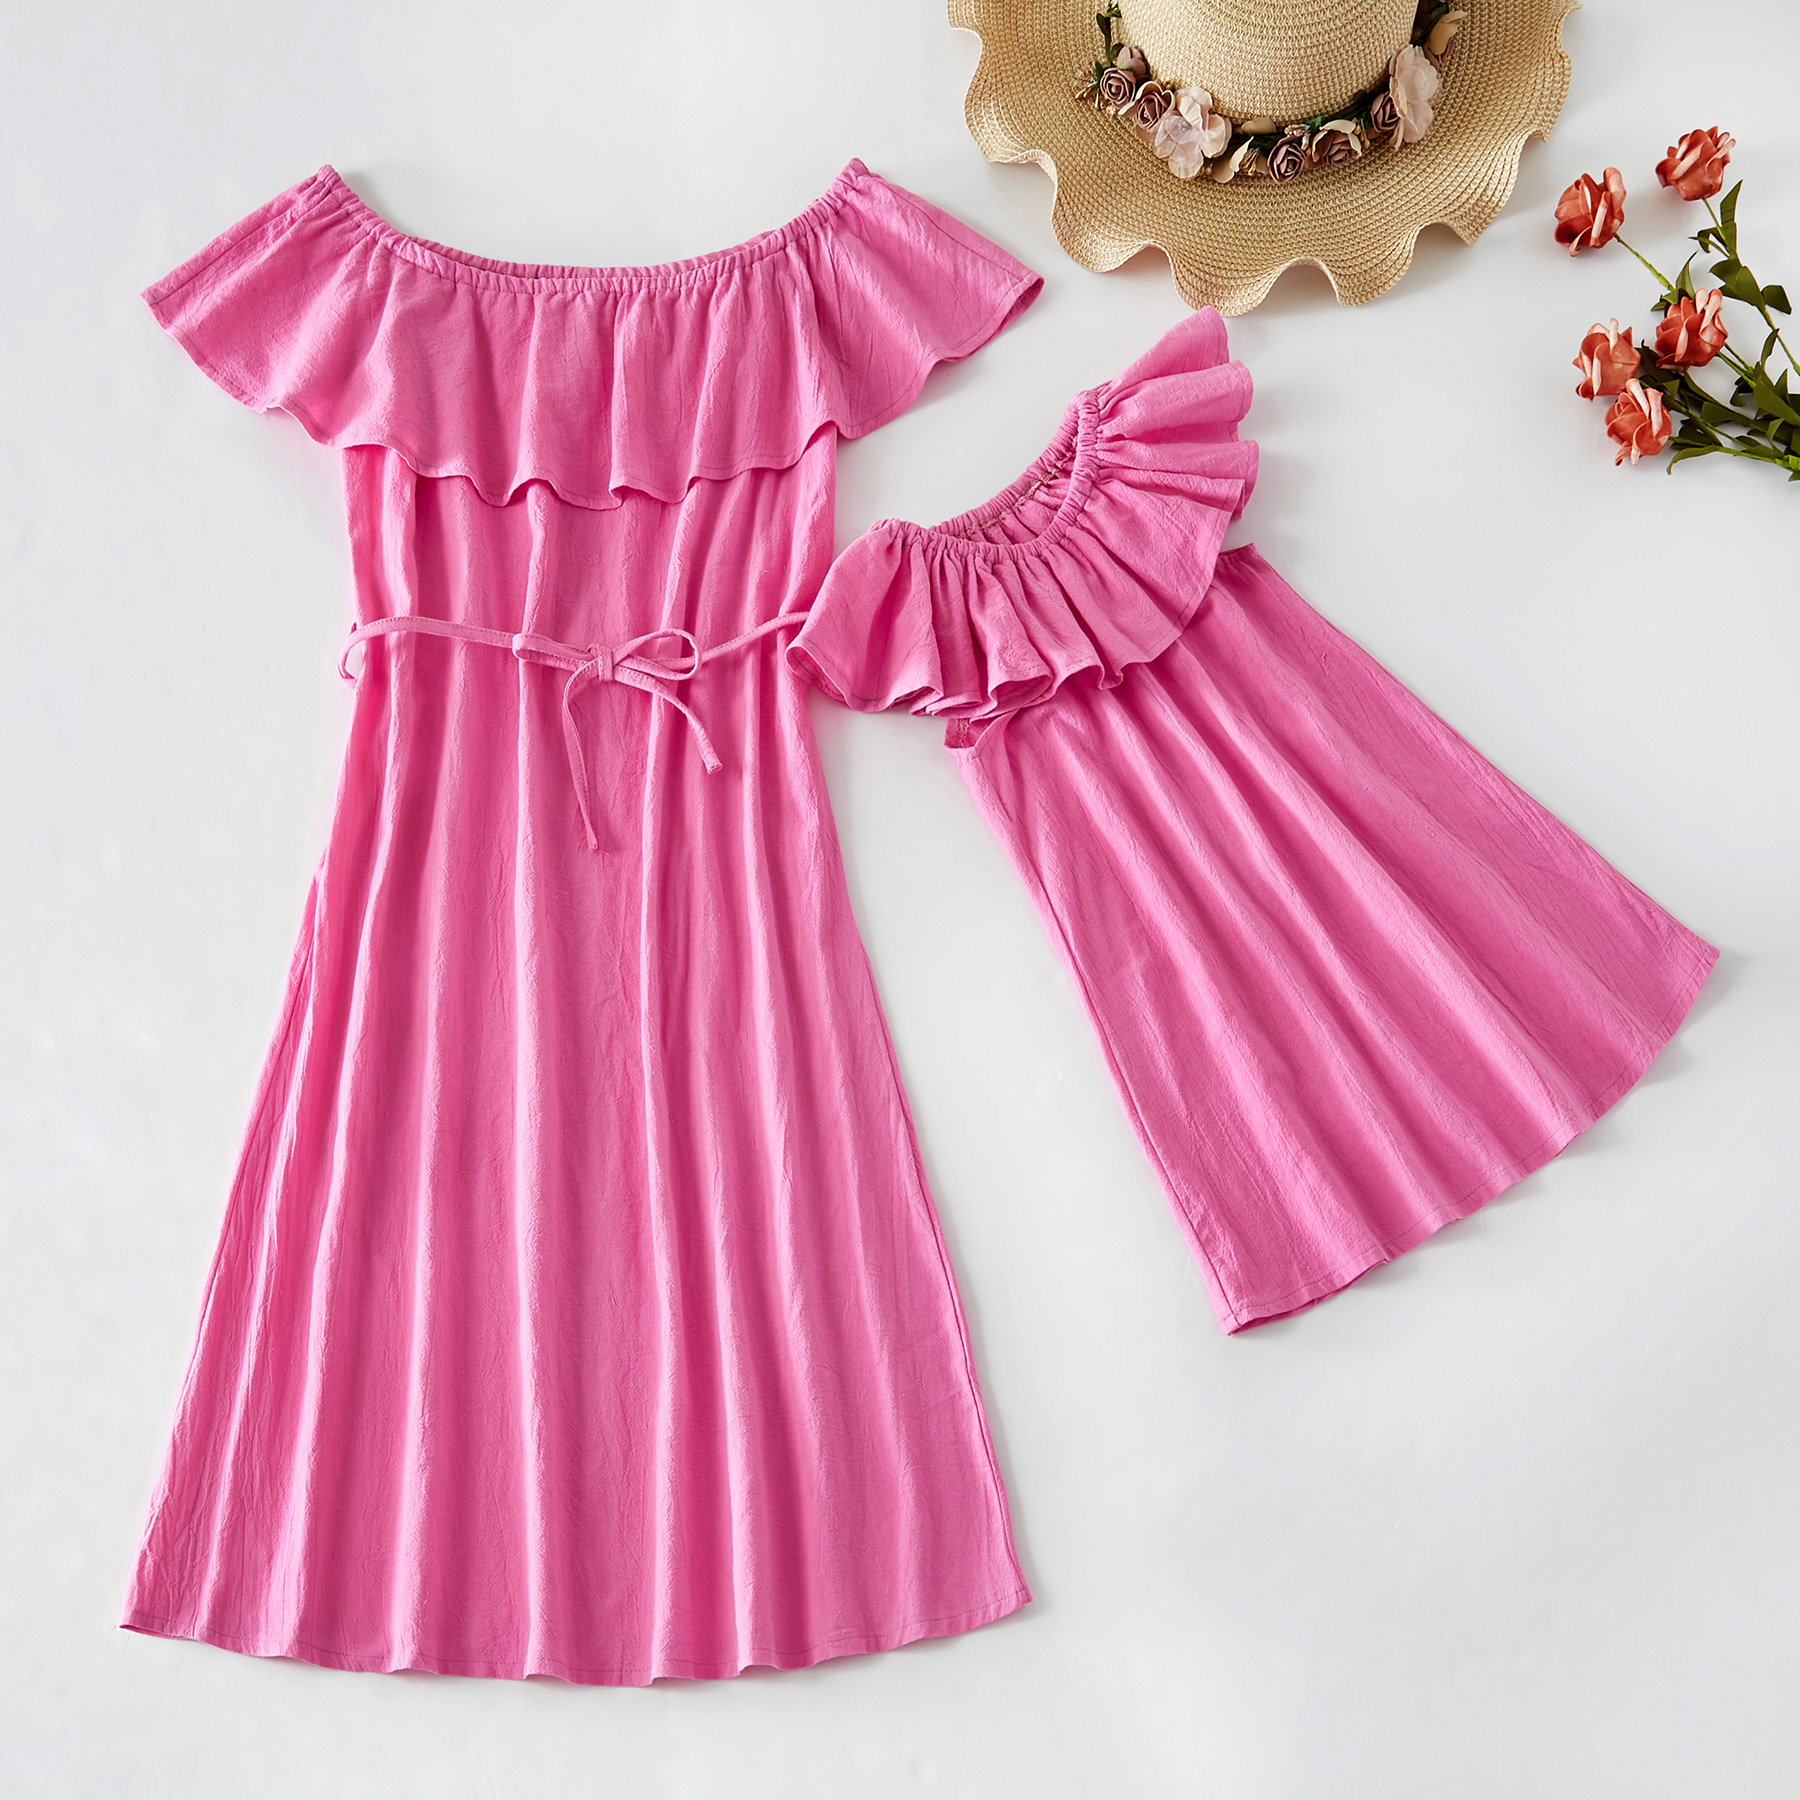 boat-neck-mom-mother-and-daughter-dresses-family-look-mommy-and-me-clothes-mum-mama-baby-dress-family-matching-clothes-outfits